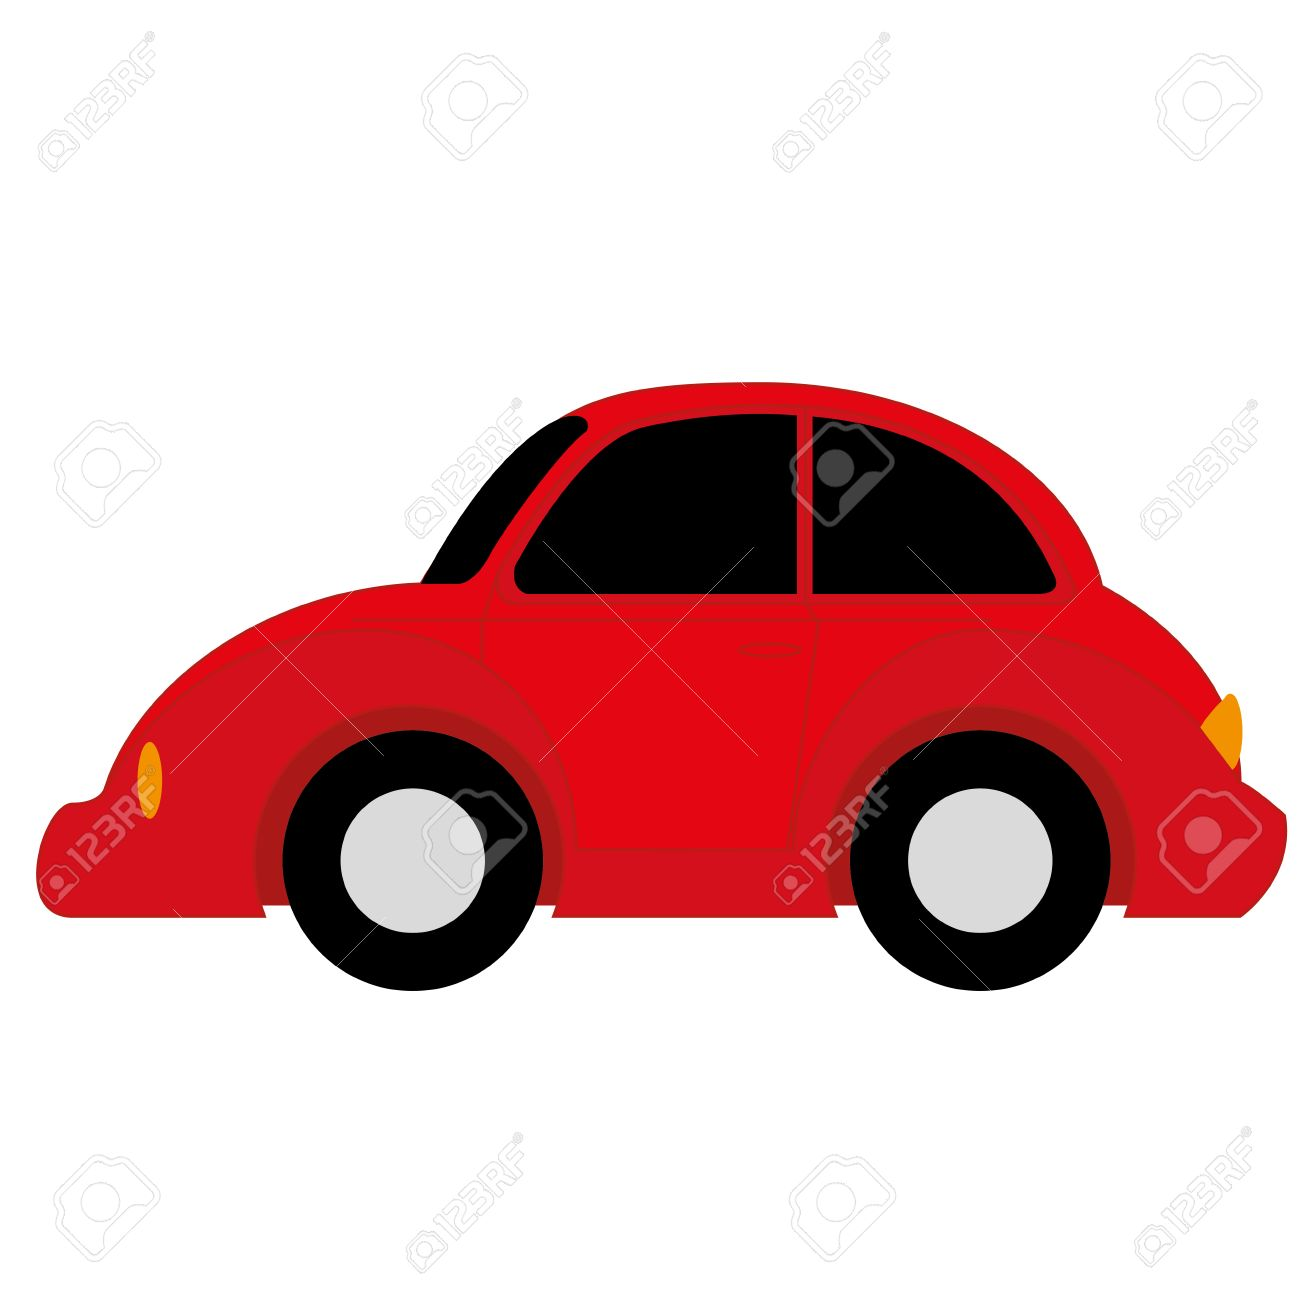 cartoon simple car on white background royalty free cliparts